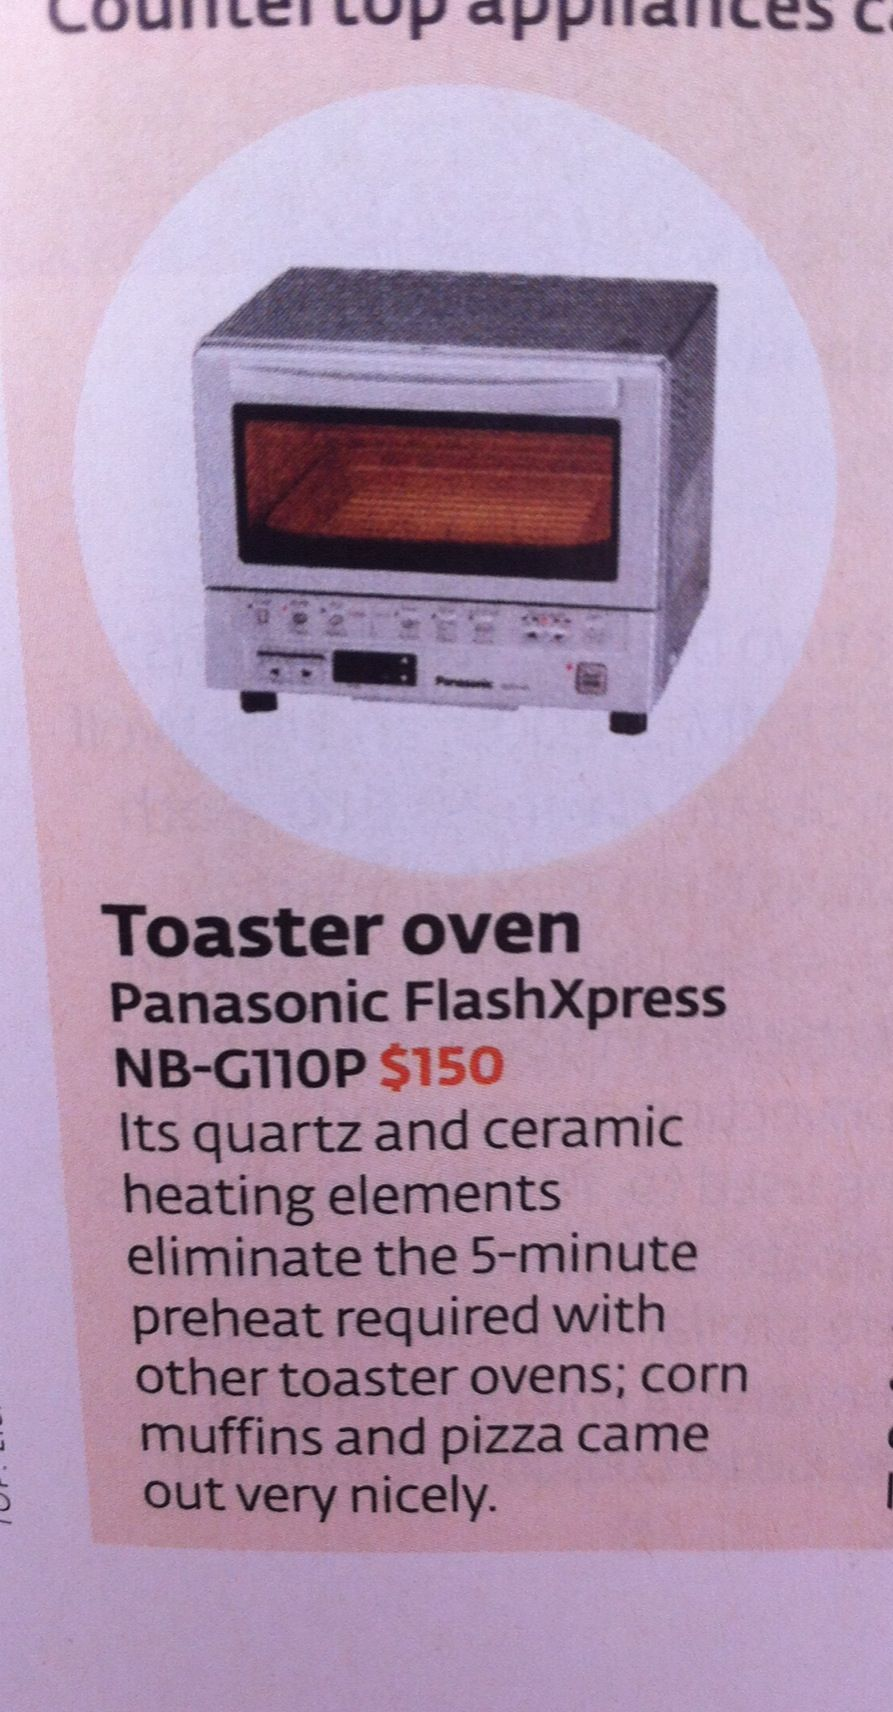 Toaster oven recommendation, consumer reports